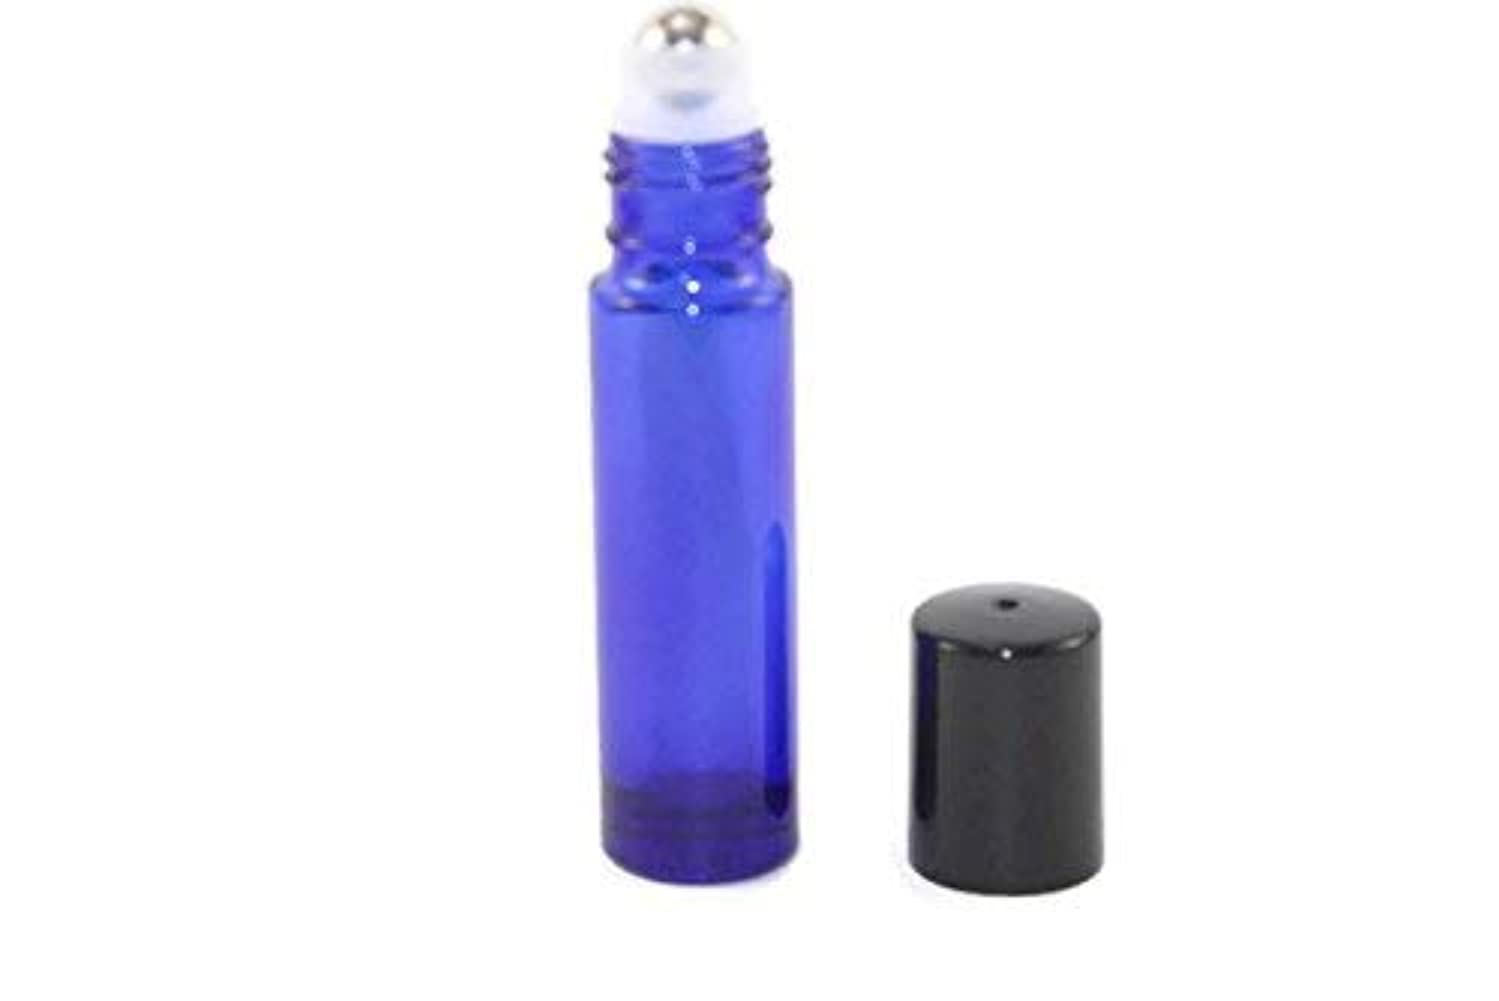 慣れている思いやり六分儀USA 144-10ml COBALT BLUE Glass Roll On THICK Bottles (144) with Stainless Steel Roller Balls - Refillable Aromatherapy...